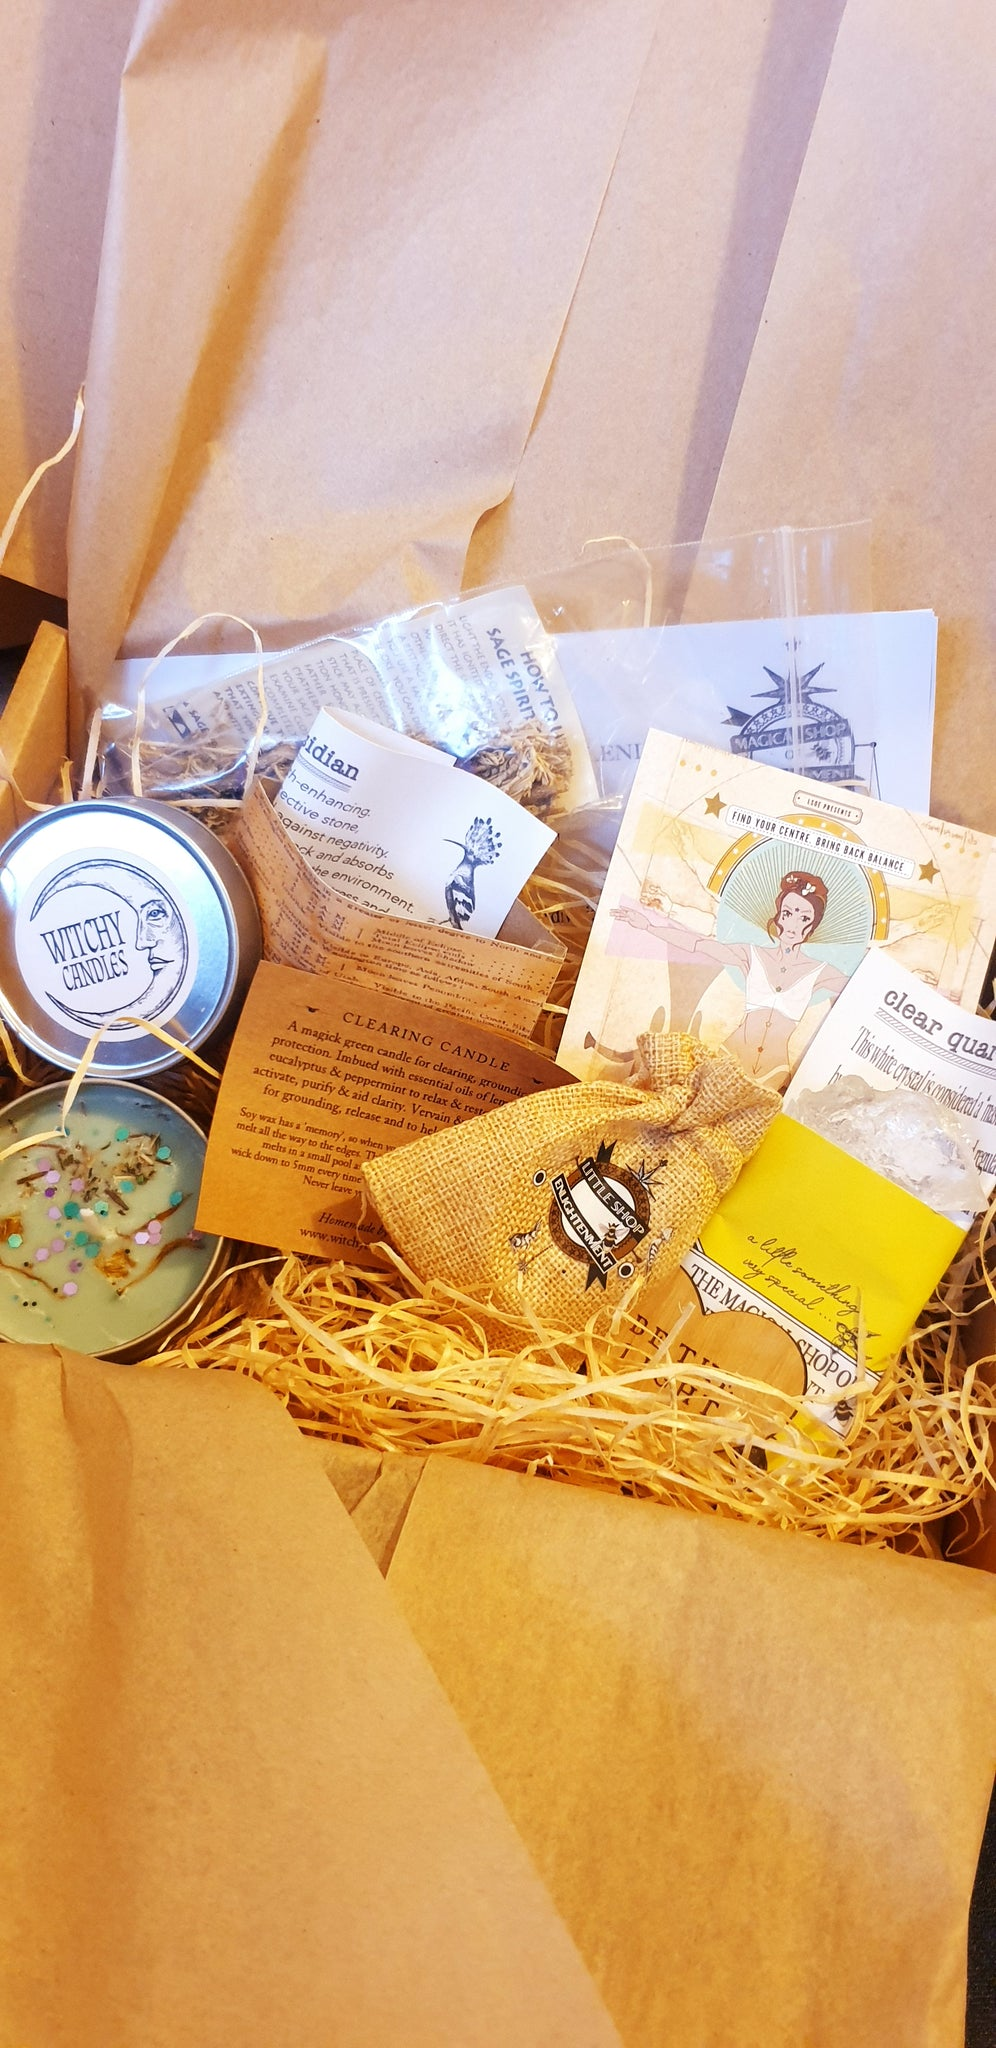 MAGICAL SHOP OF ENLIGHTENMENT De luxe Box